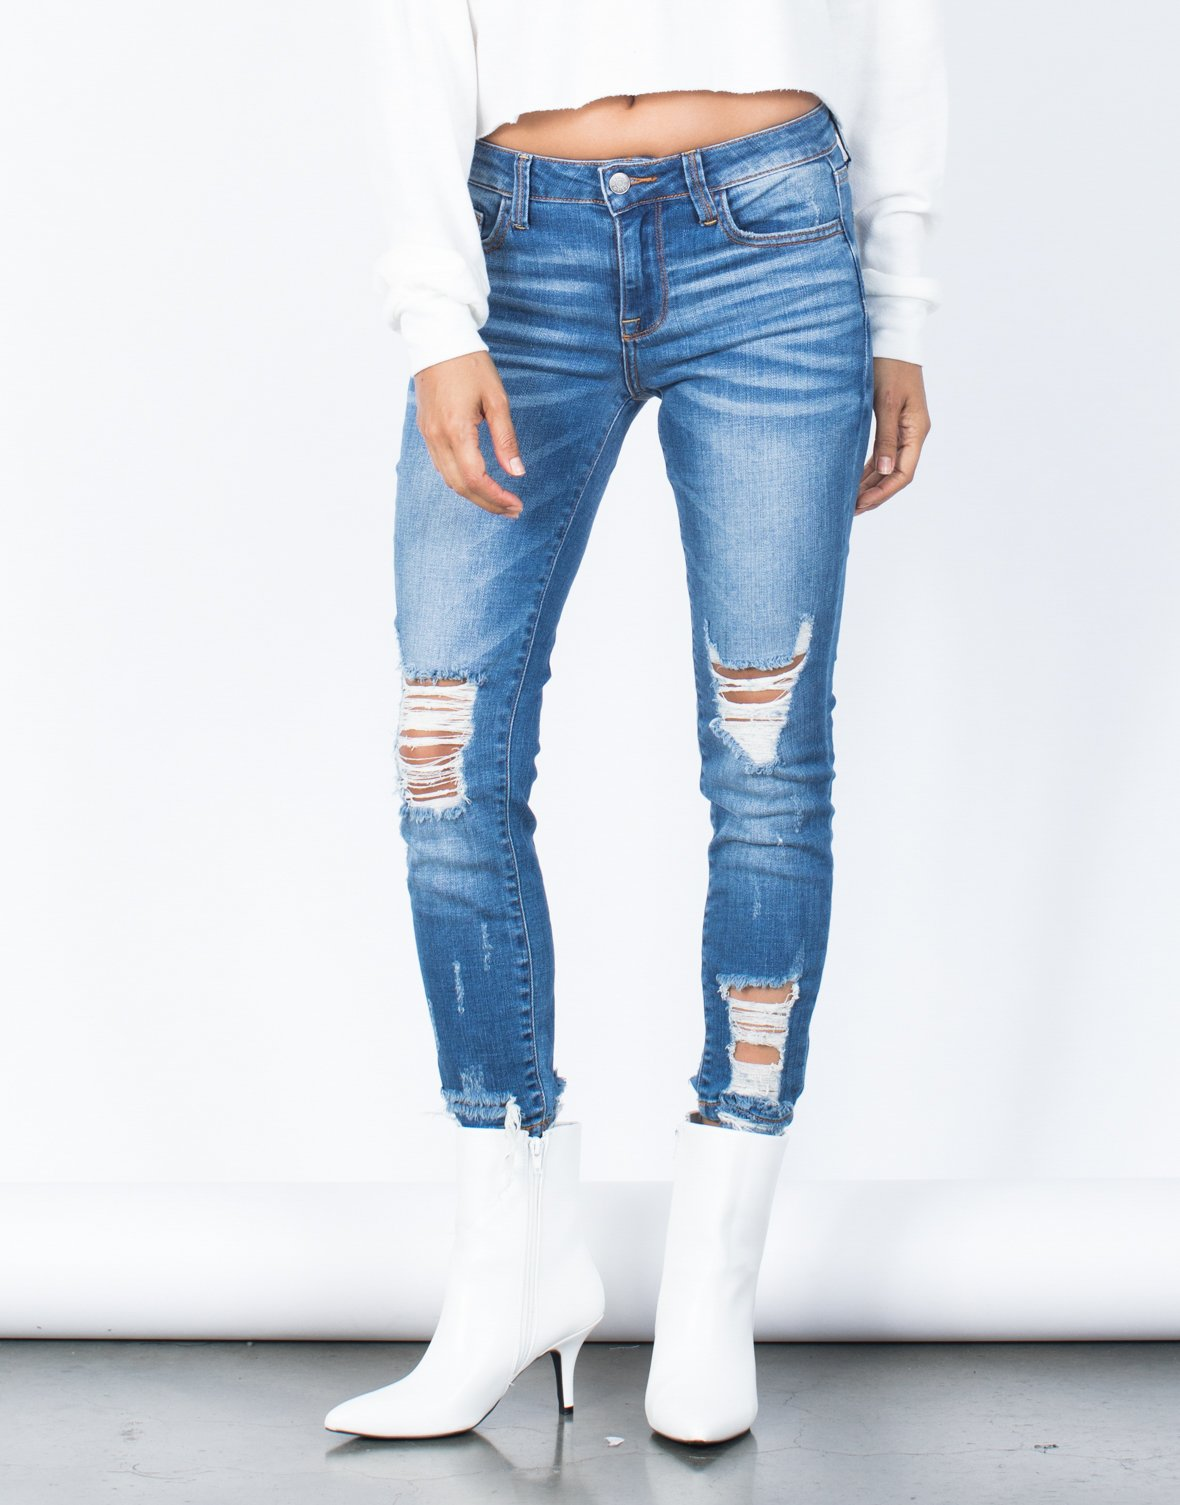 Day to Day Jeans - 2020AVE